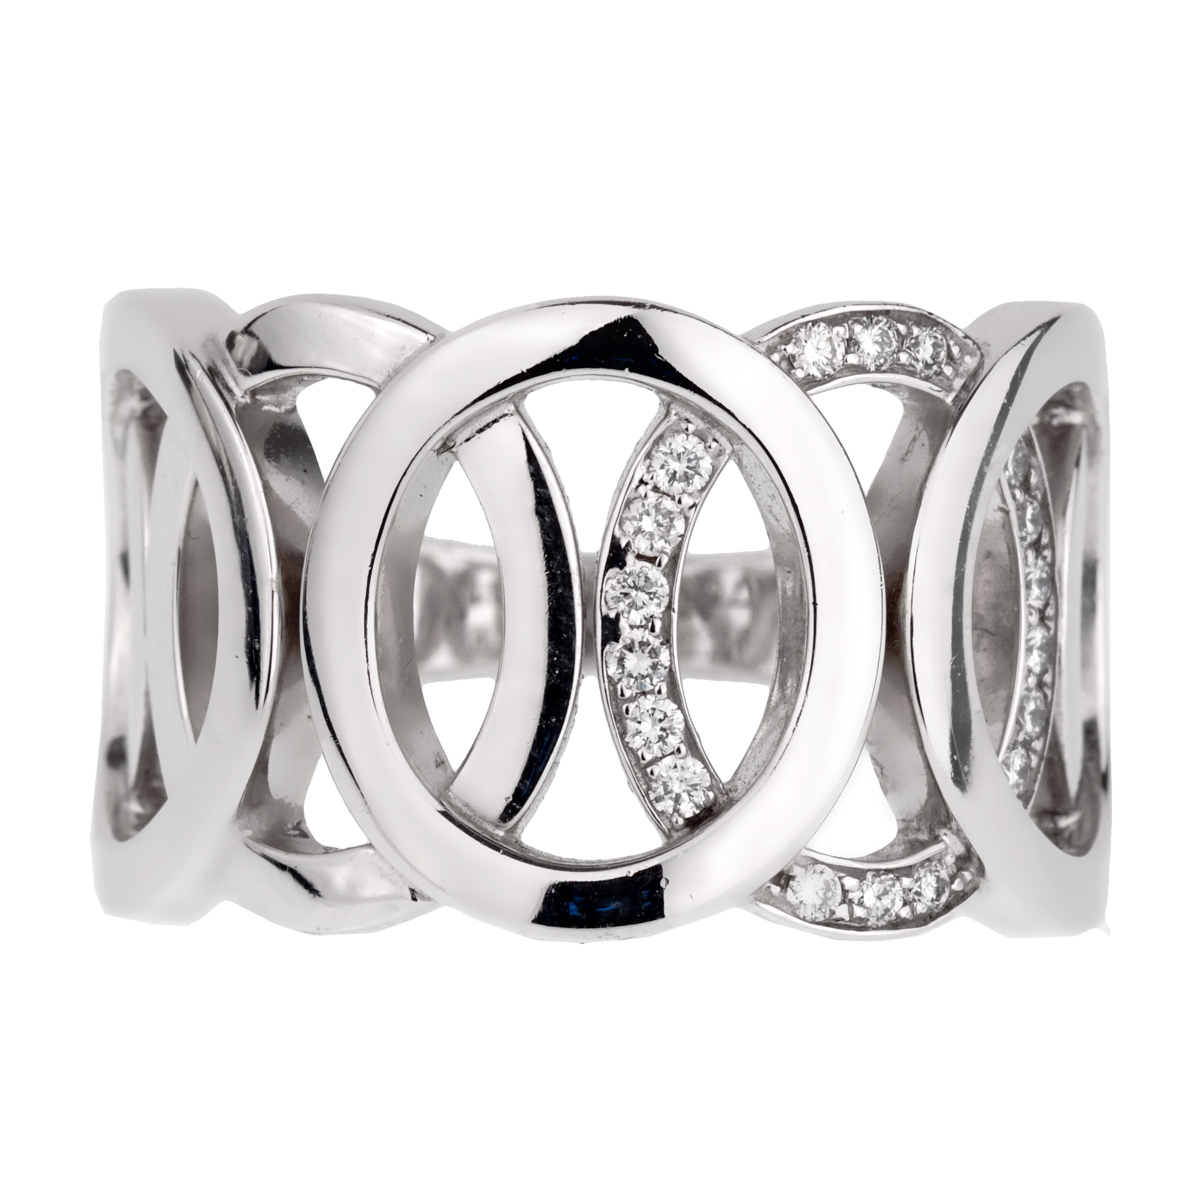 Audemars Piguet Millenary Diamond White Gold Ring